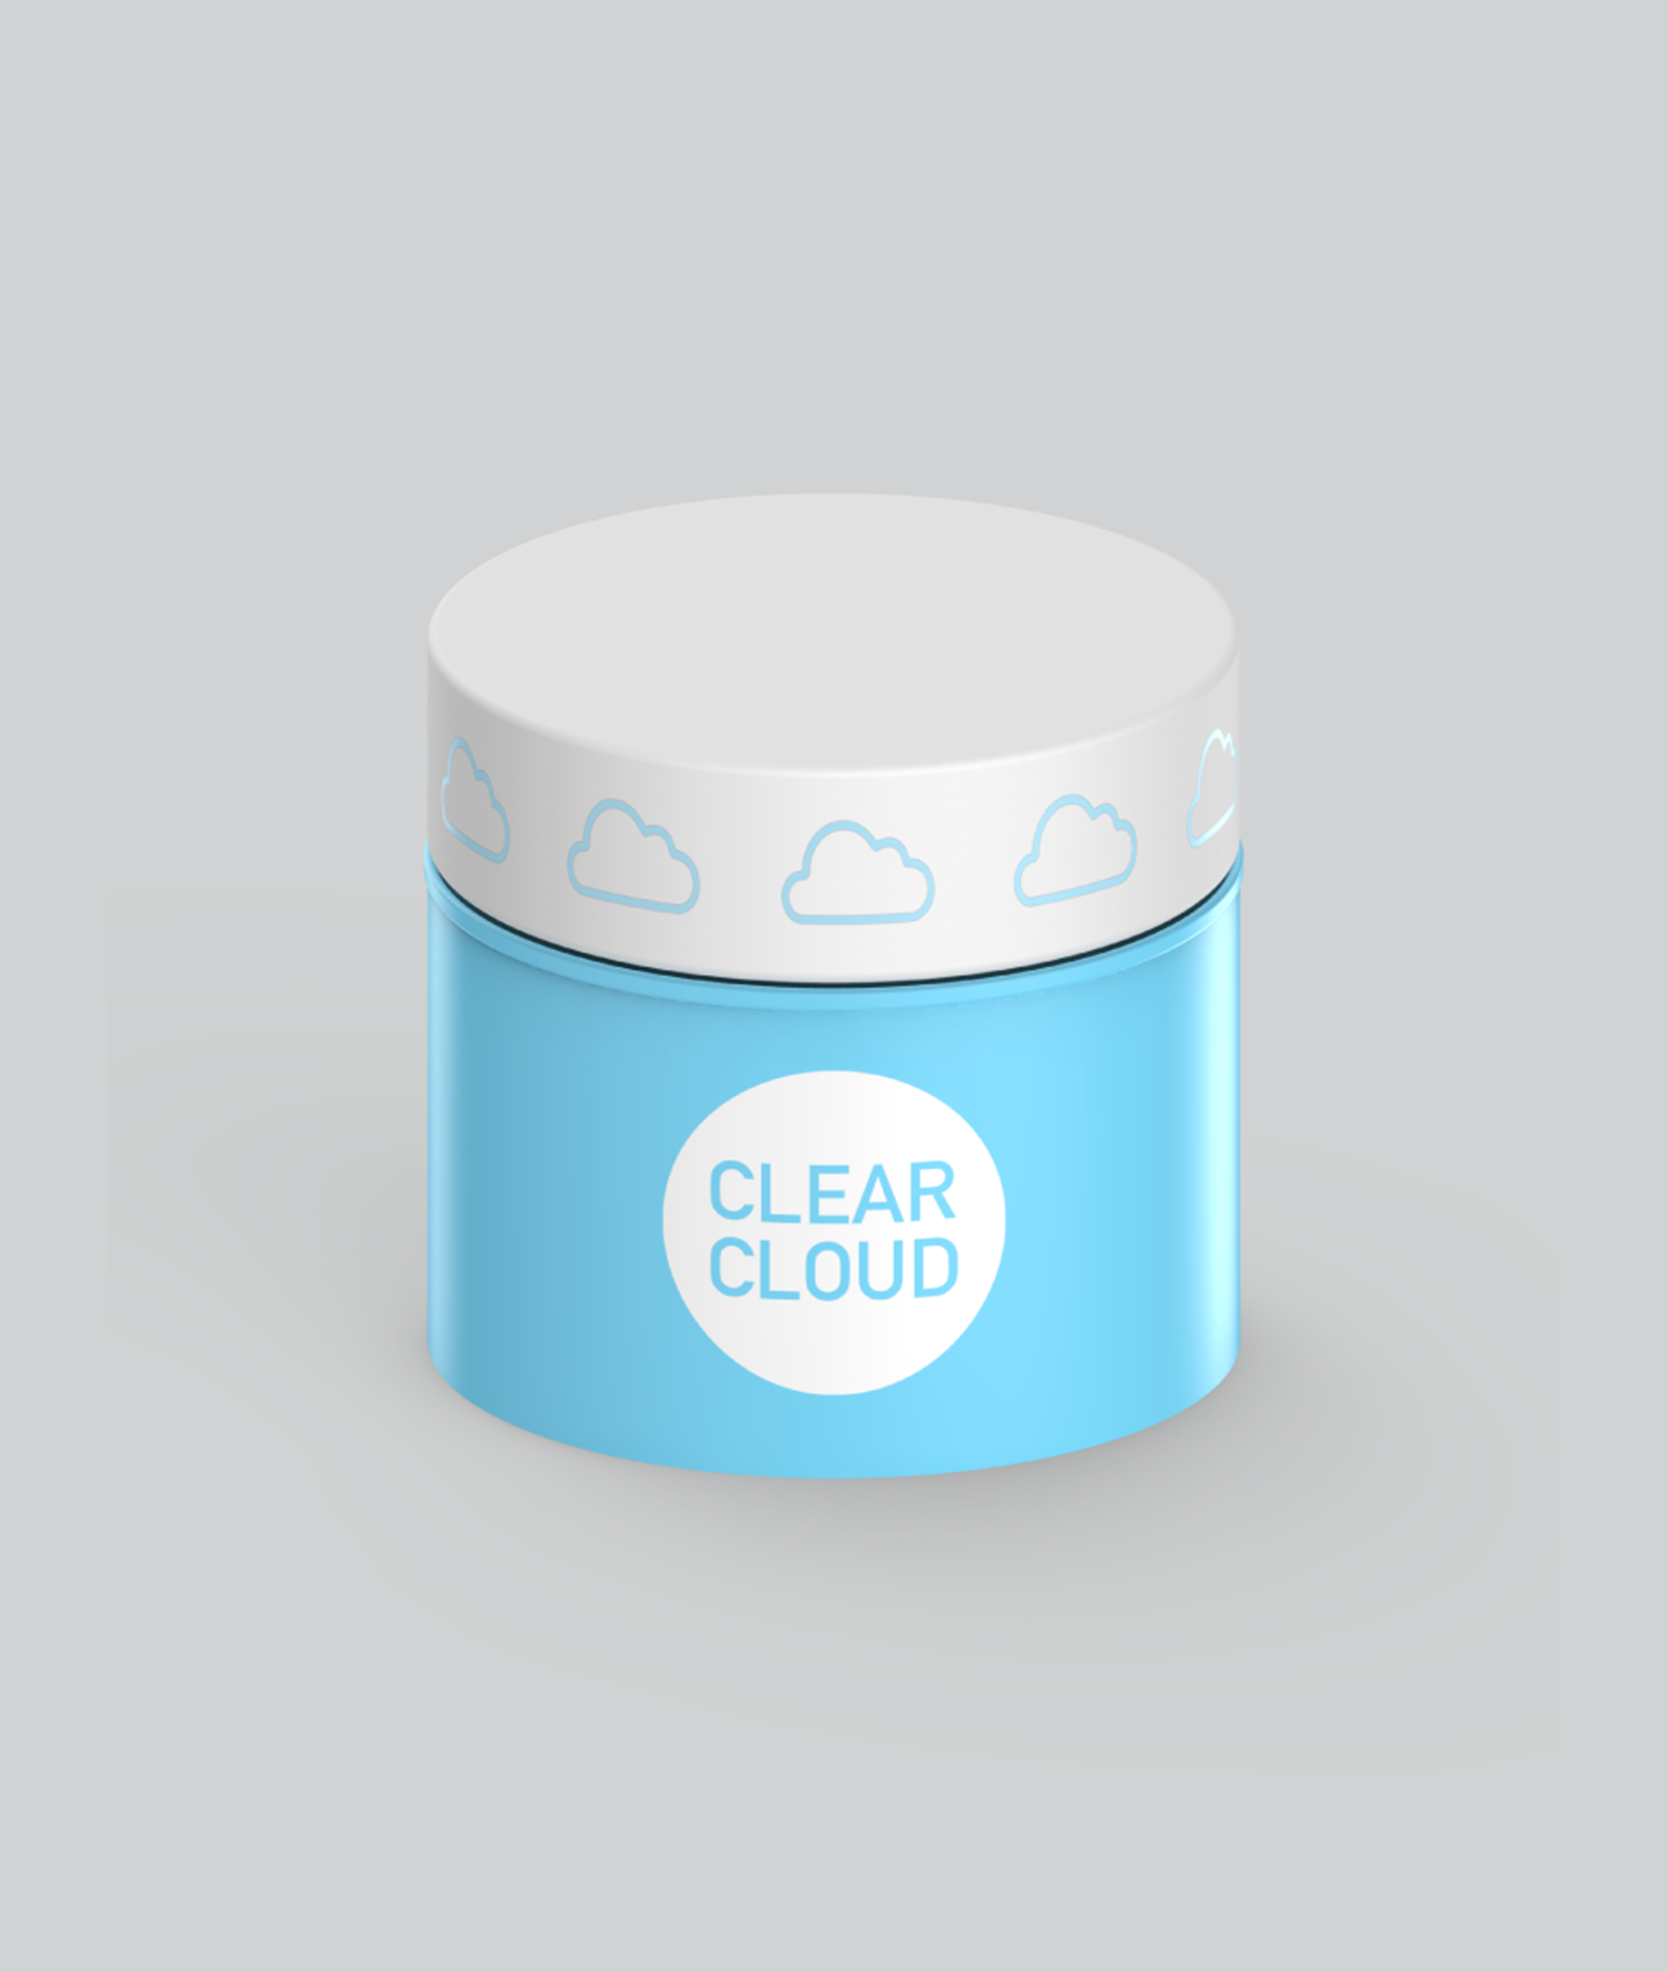 clearcloud-custom-round-metal-tin-containers